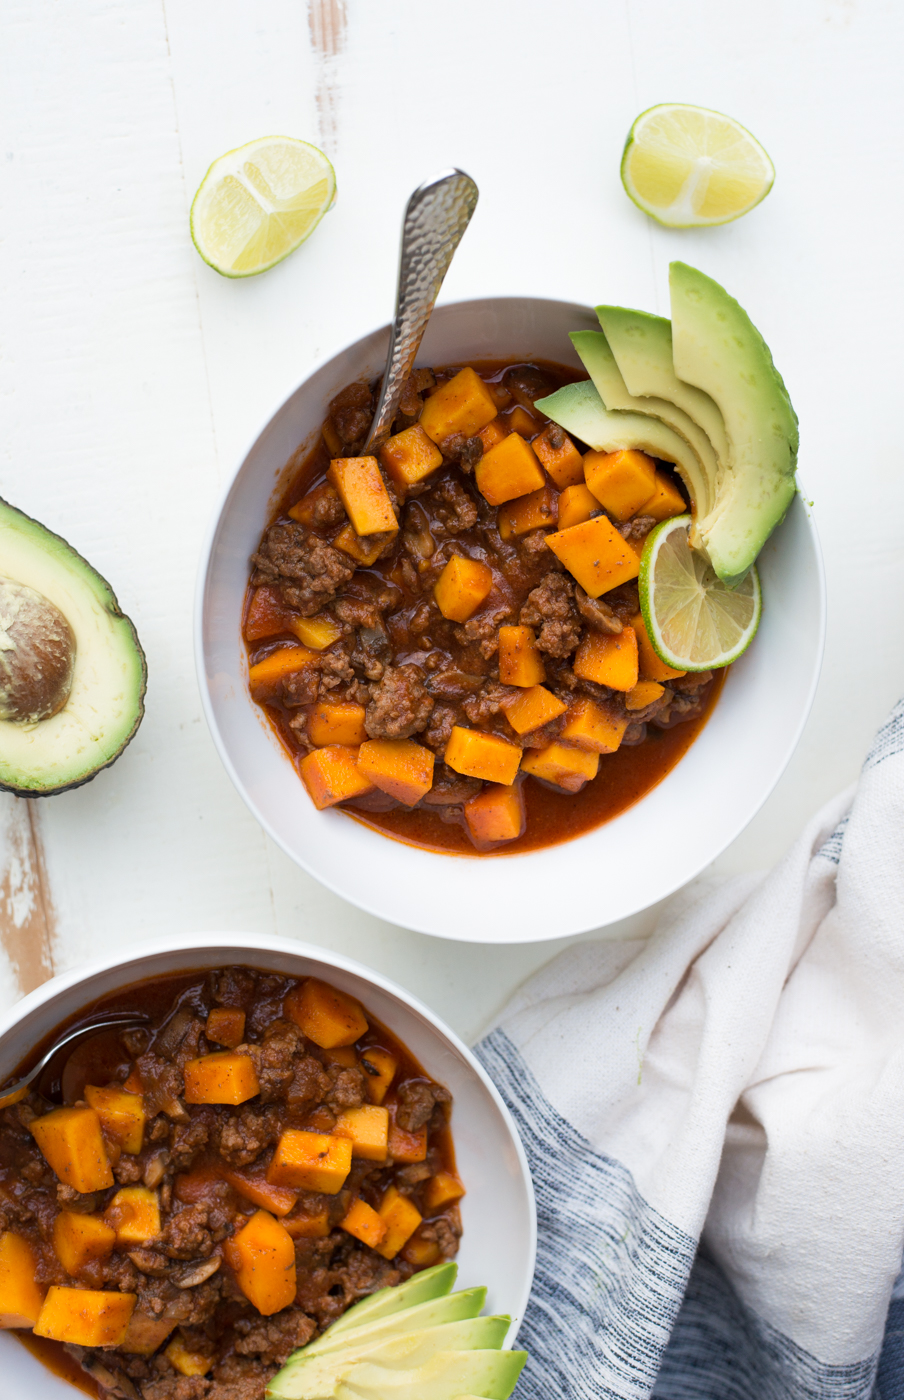 30-Minute Beef & Butternut Paleo Chili (+ Vegetarian Option) whole30 compliant